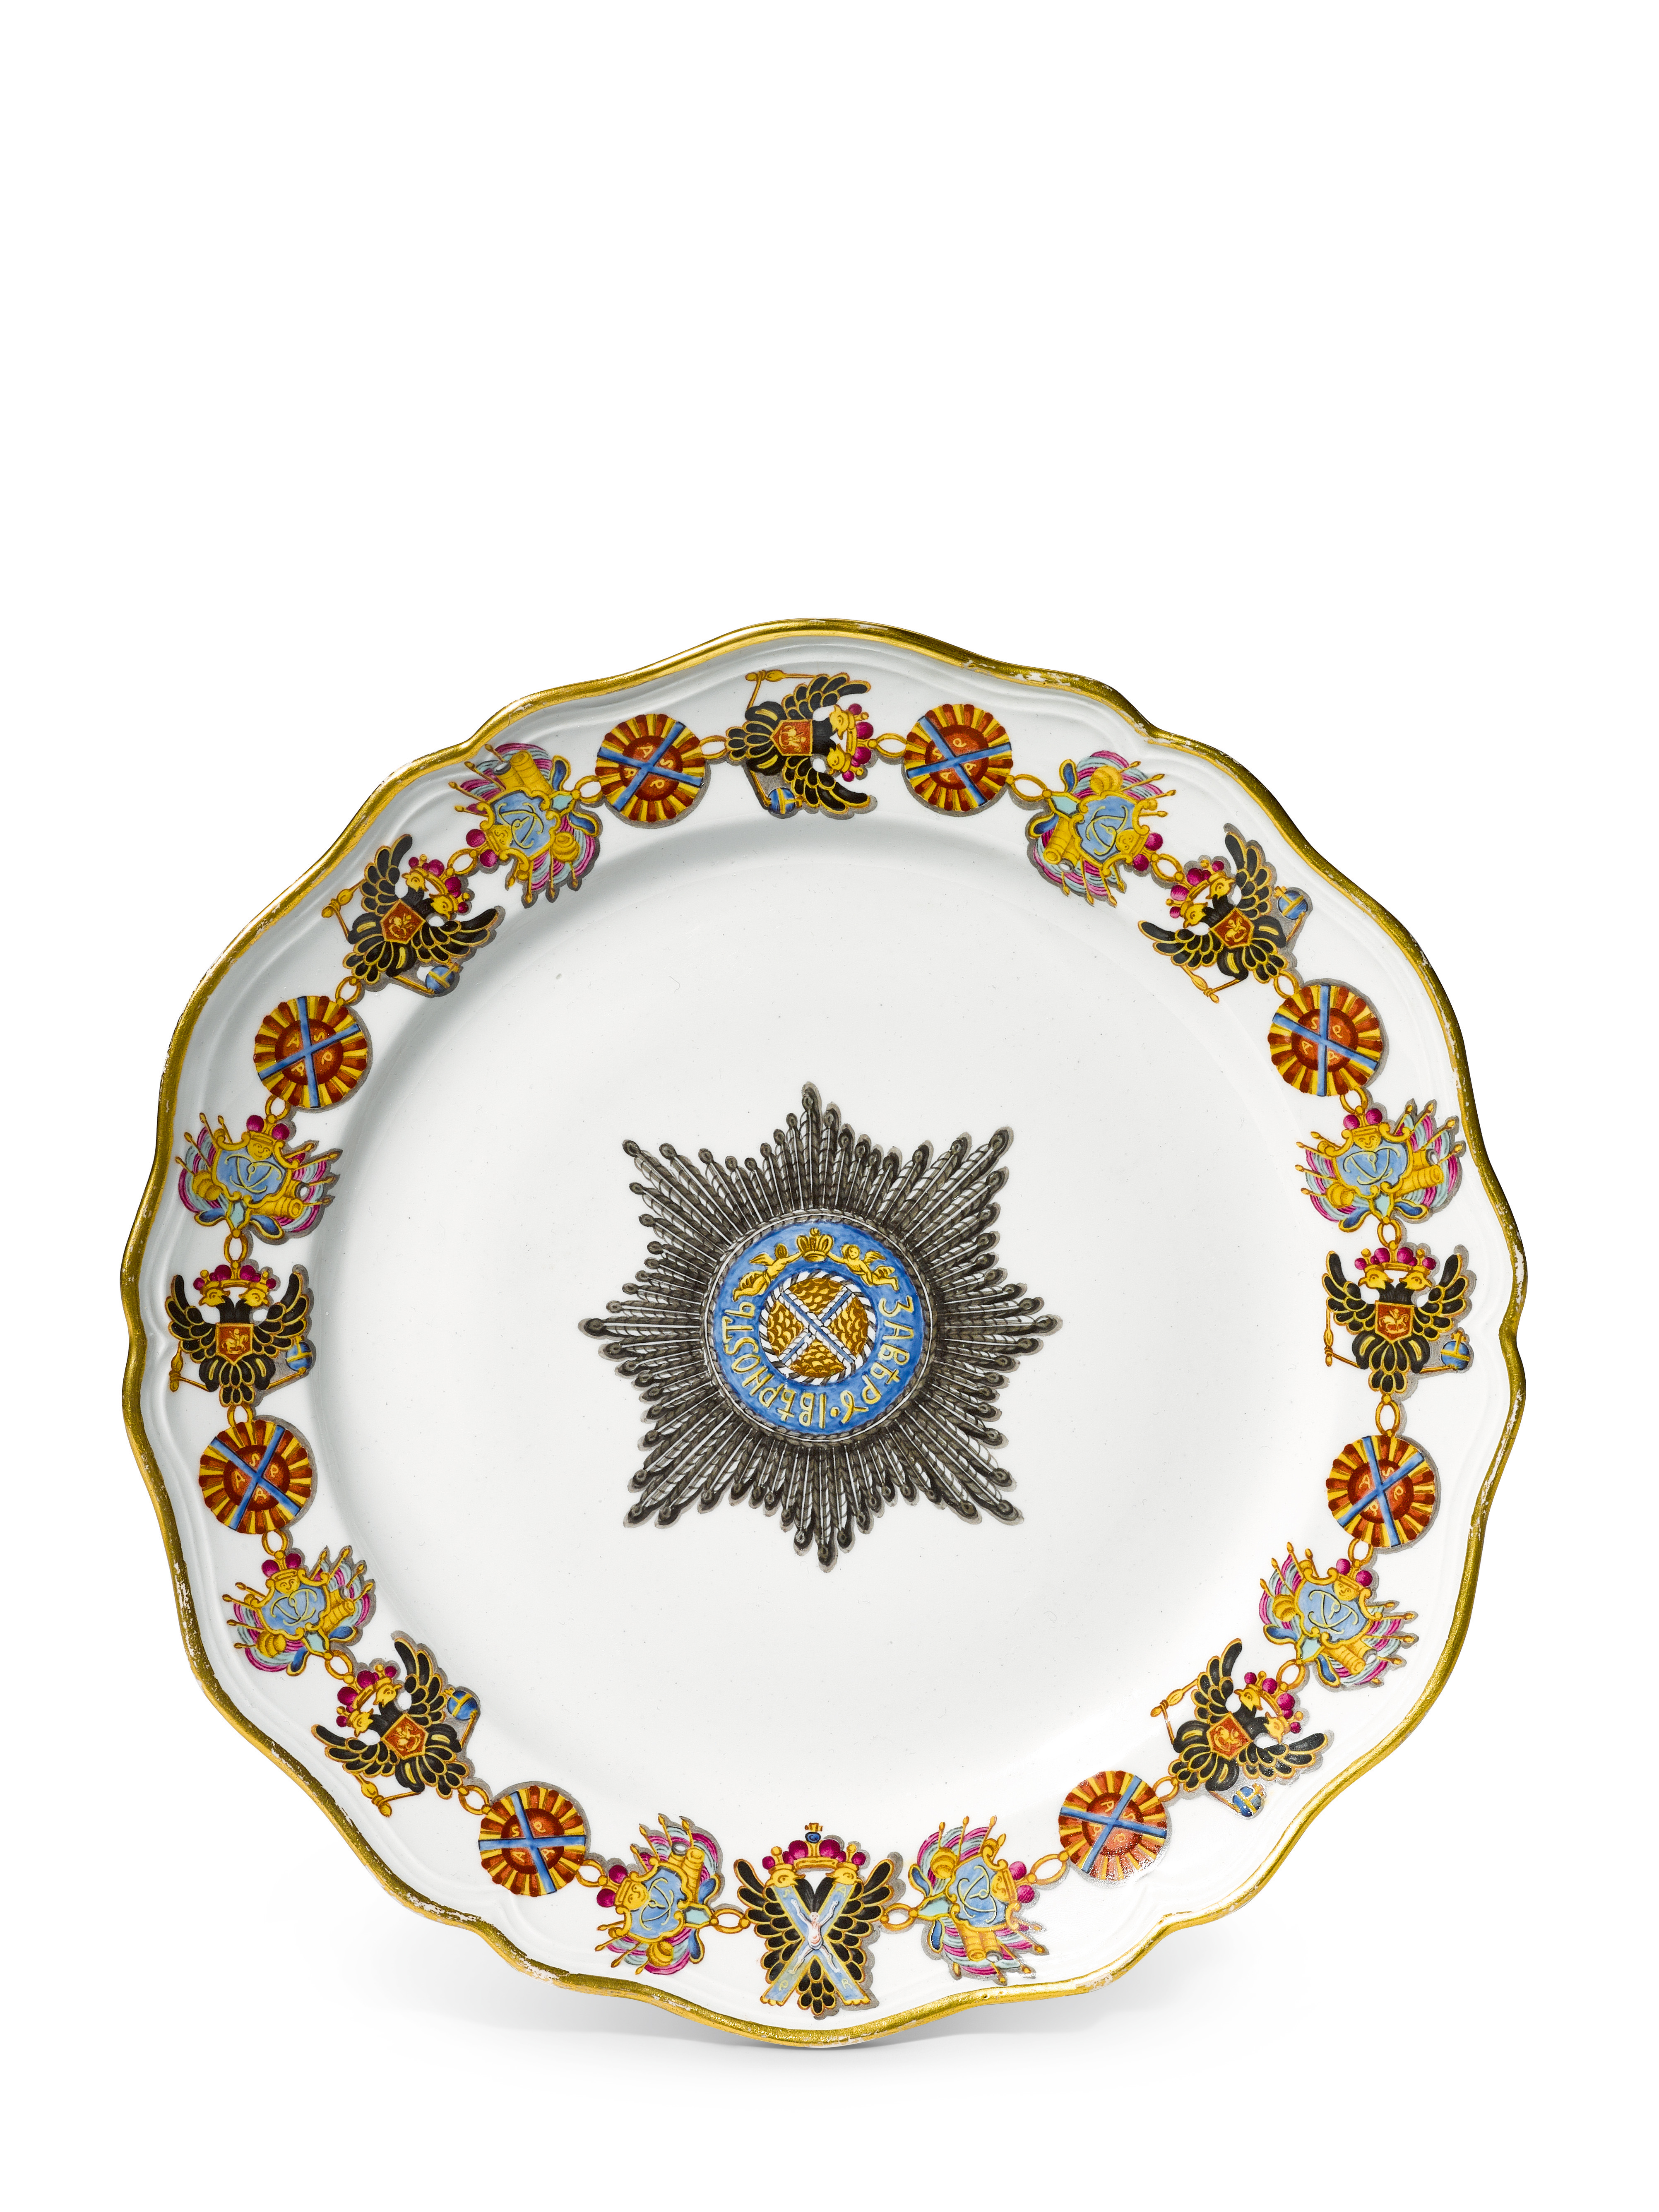 View full screen - View 1 of Lot 347. A porcelain plate from the service of the Order of St Andrew, Imperial Porcelain Factory, St. Petersburg, period of Alexander II (1855-1881).